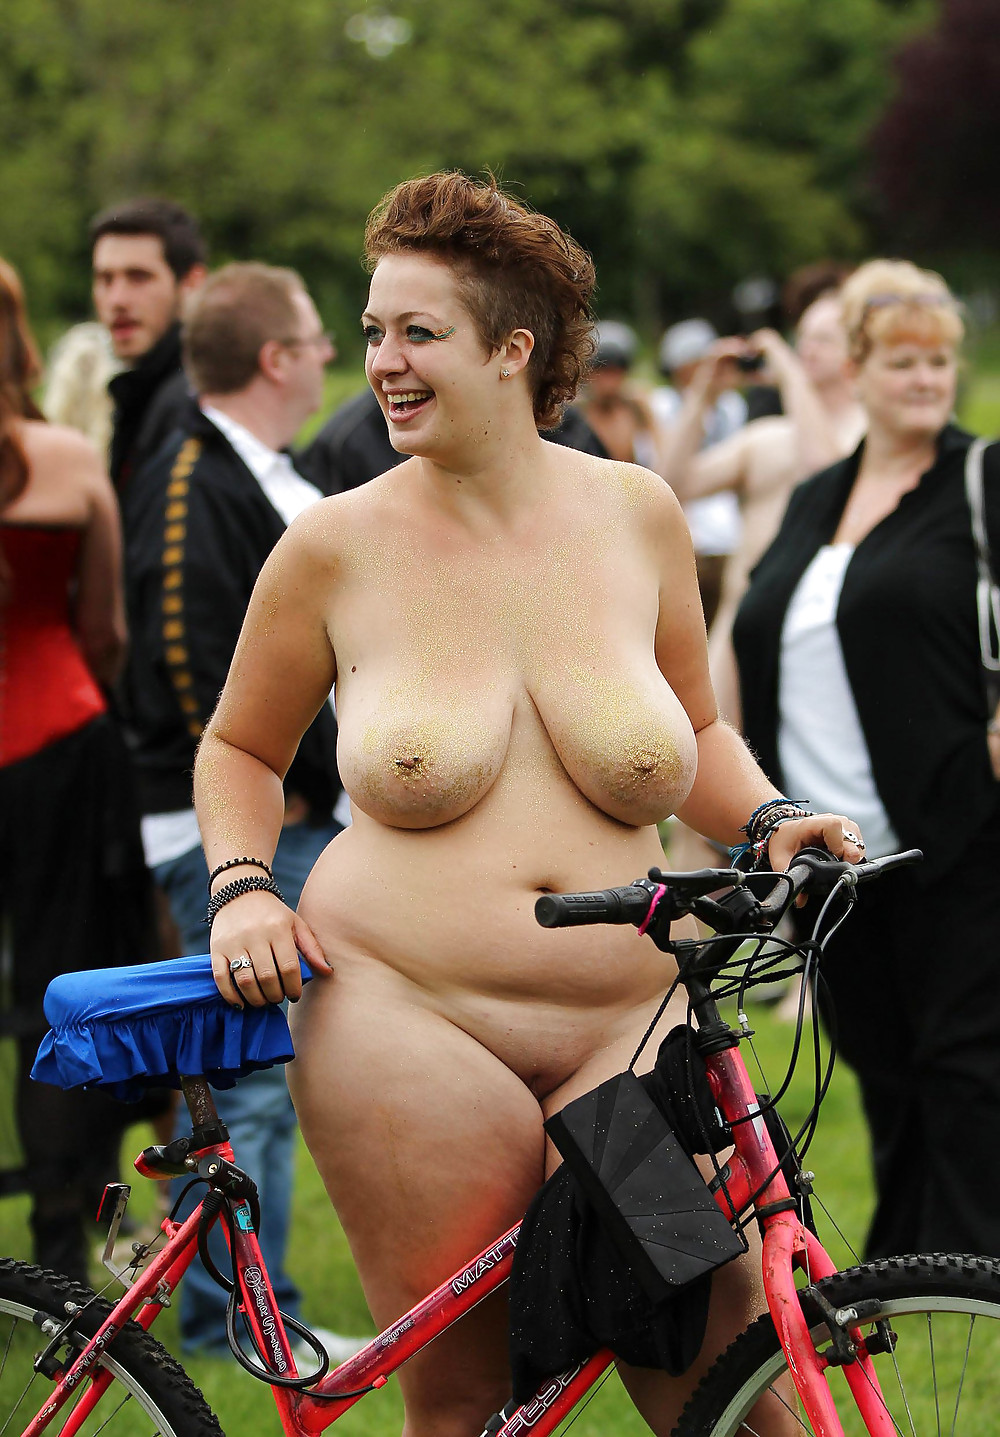 hand-fat-girl-naked-on-a-bike-slut-she-said